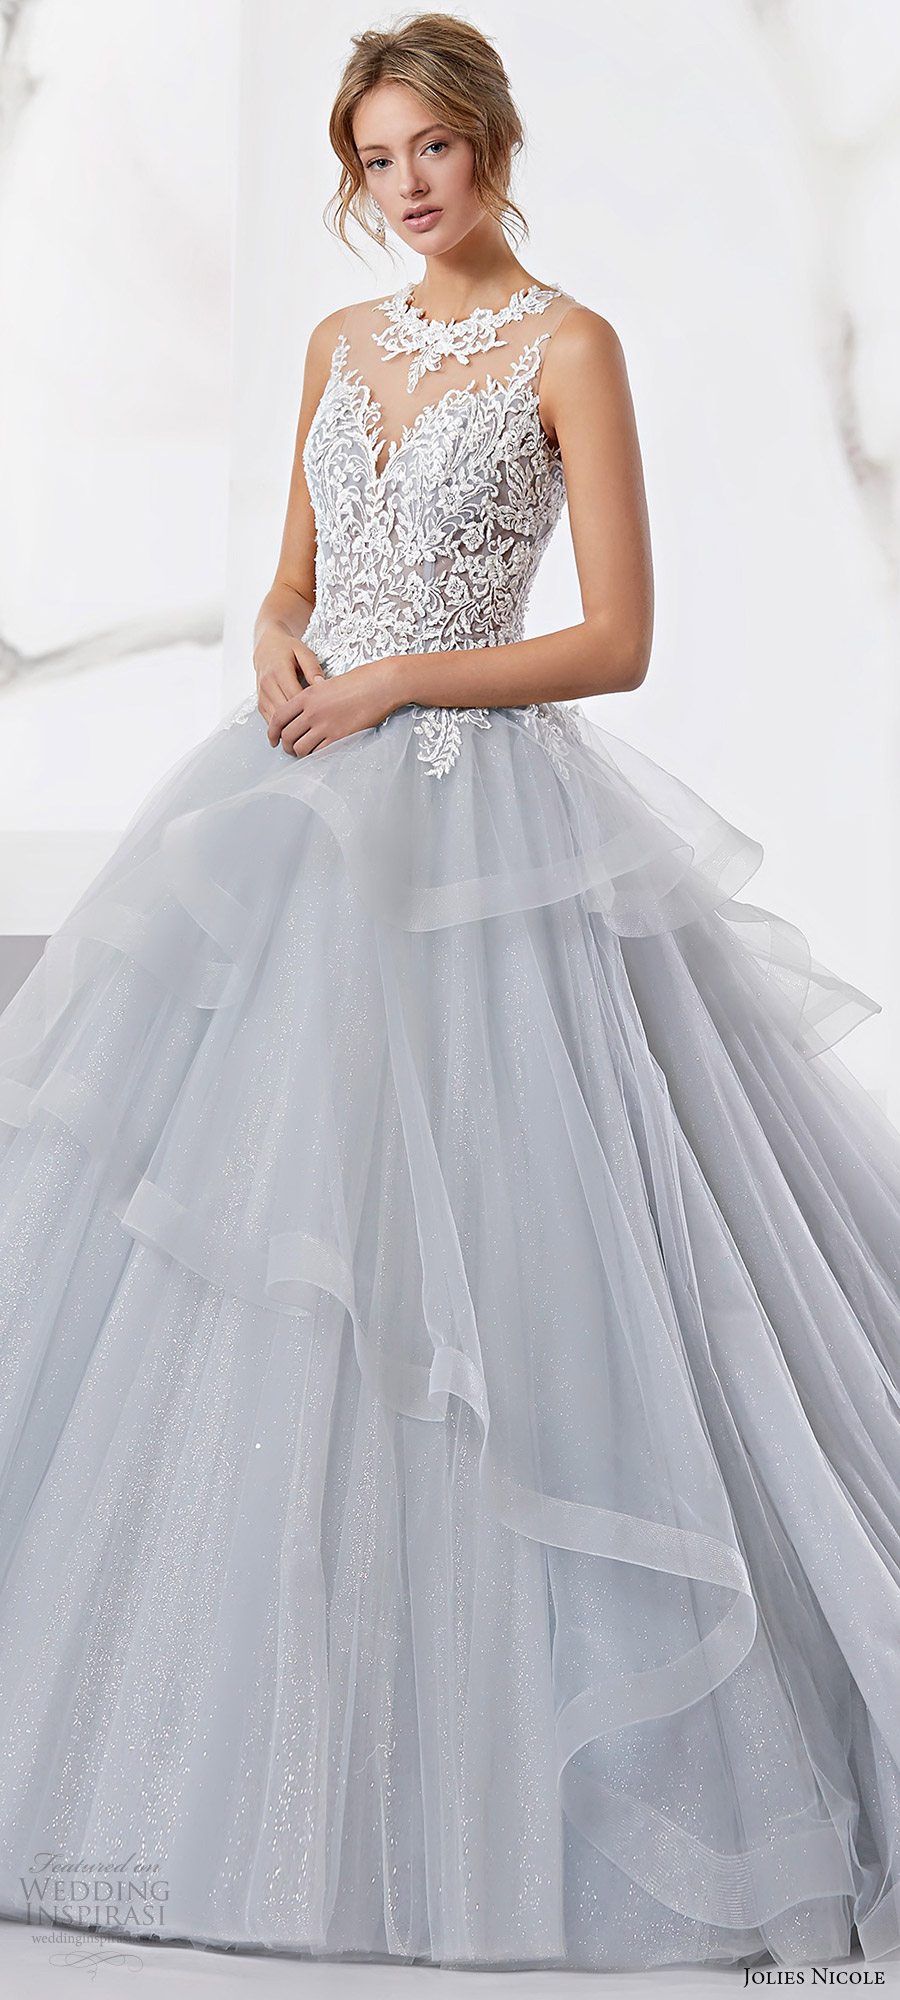 jolies nicole 2018 bridal trends sleeveless jewel neck beaded lace bodice layered skirt ball gown wedding dress (JOAB18526) mv light blue